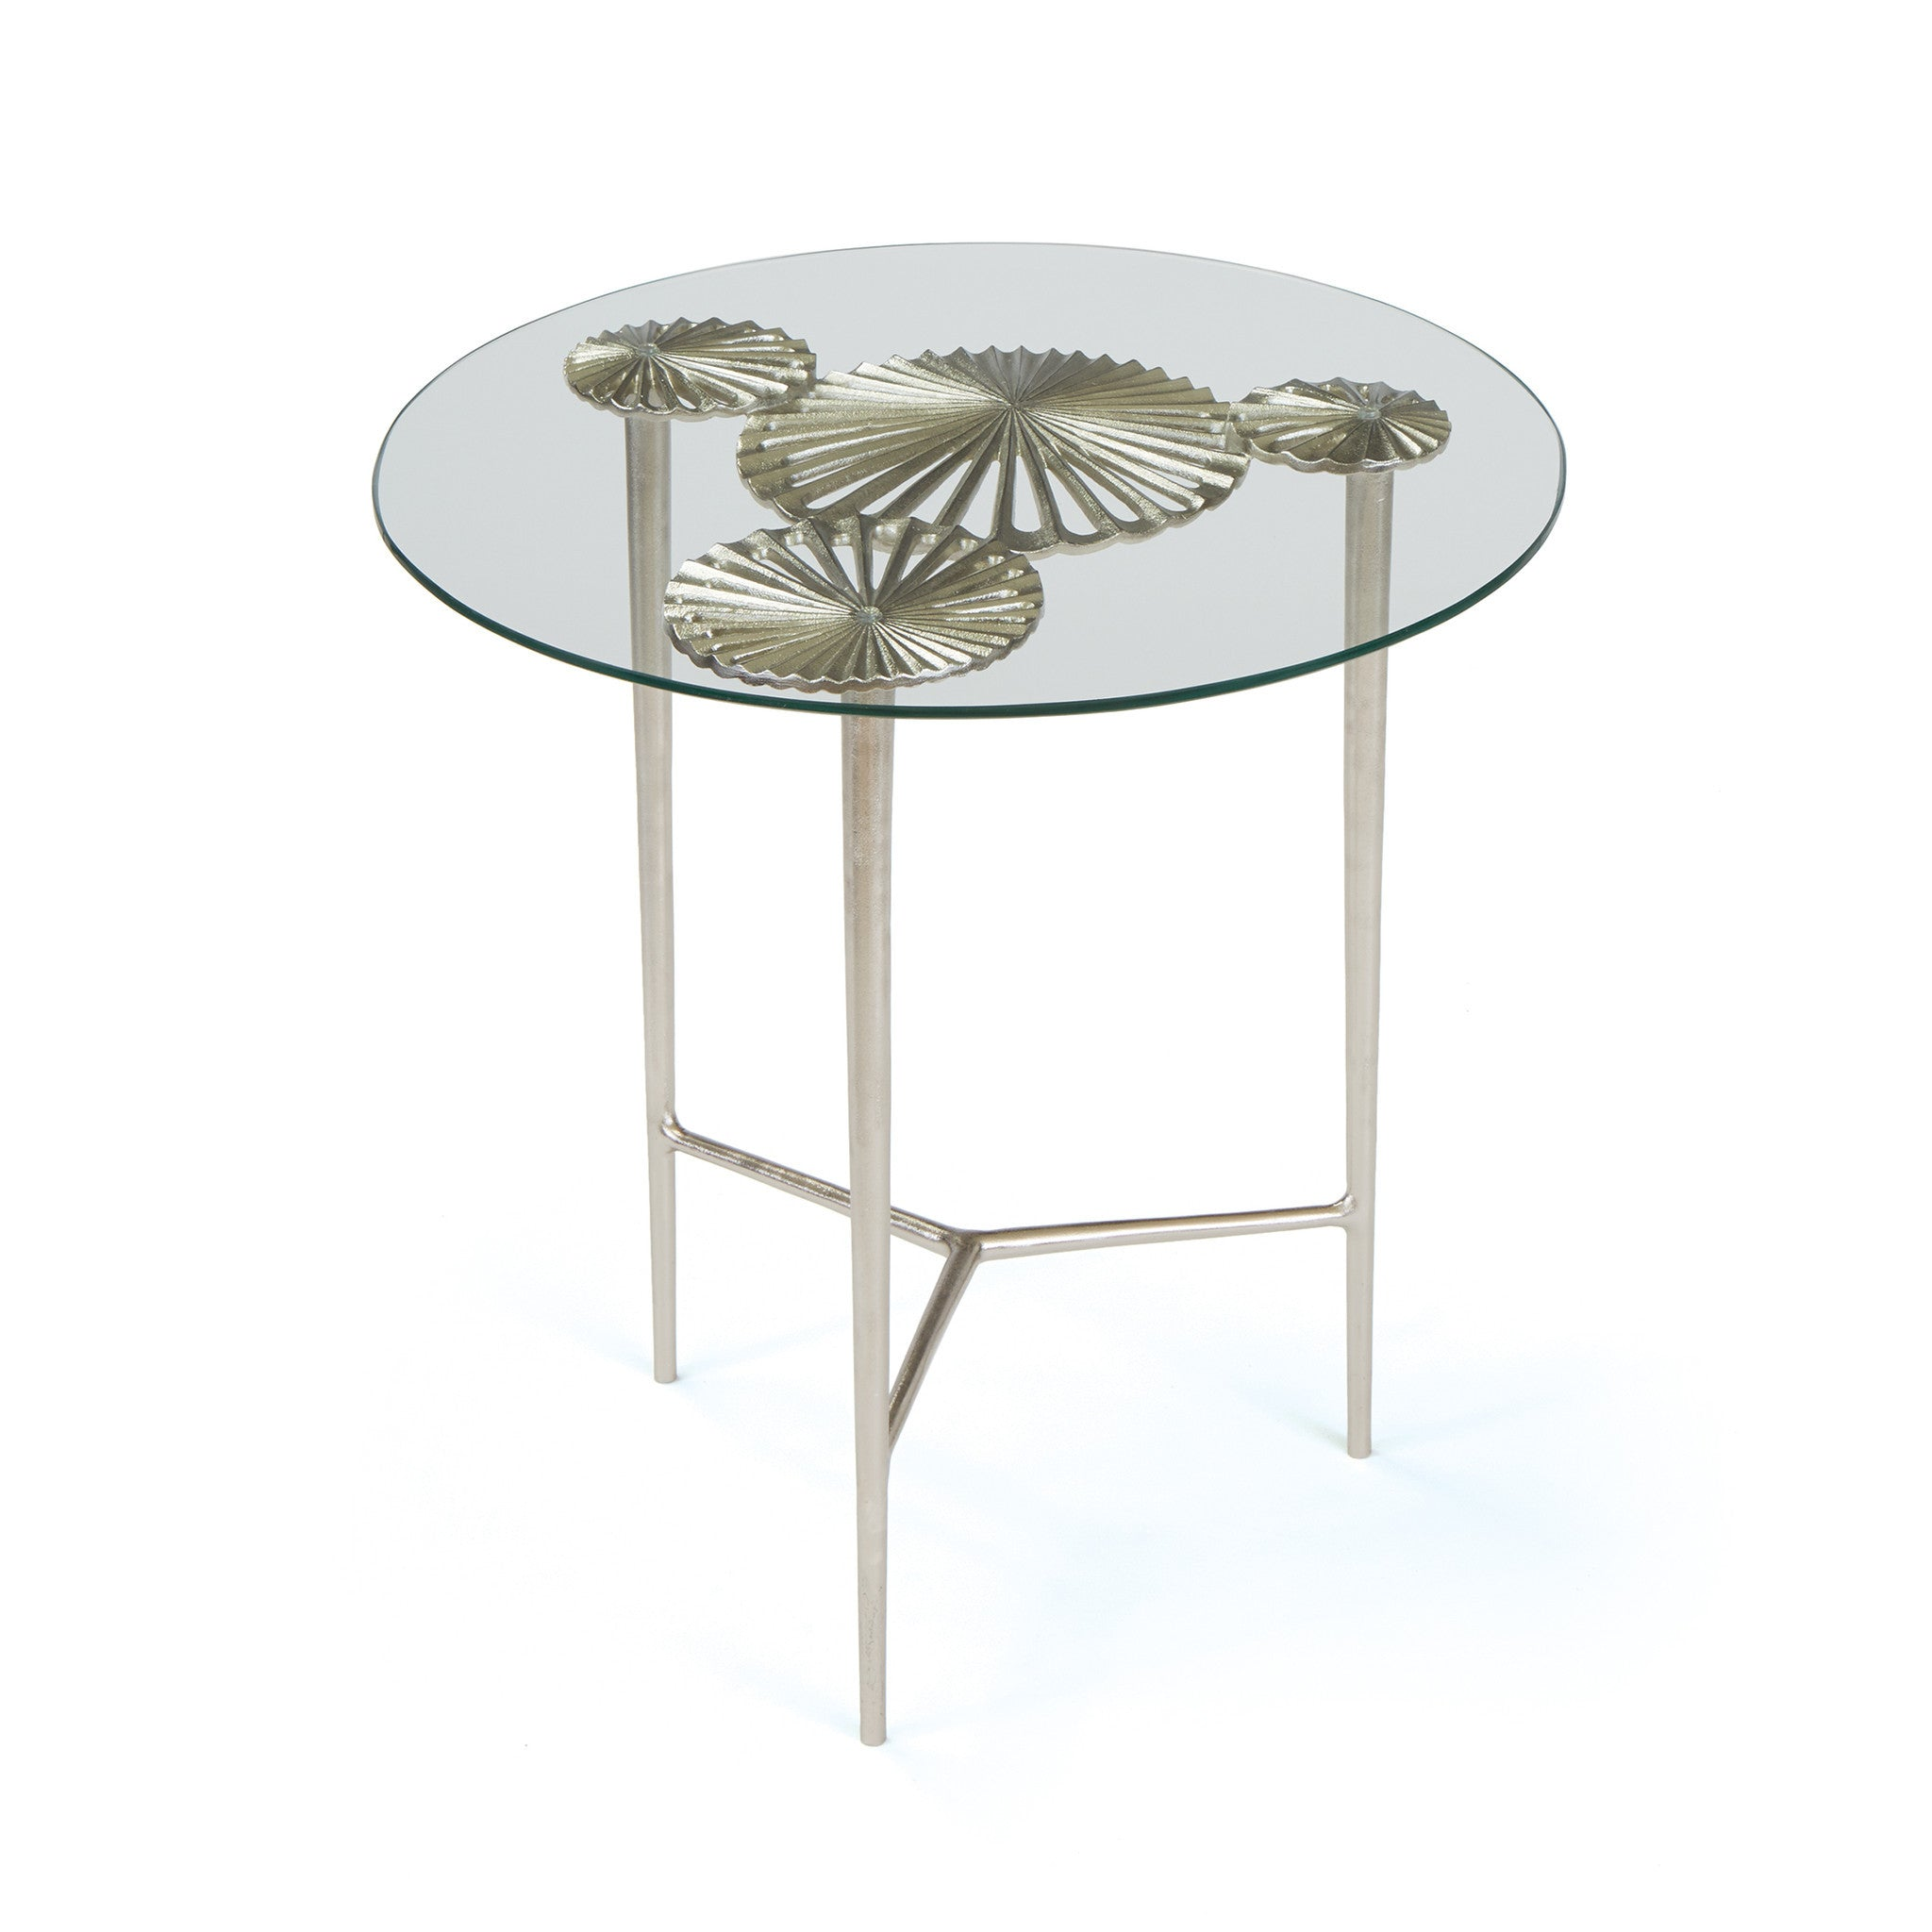 Alton Side Table With Round Glass Top On Brushed Nickel Aluminum Side Tables  Alan